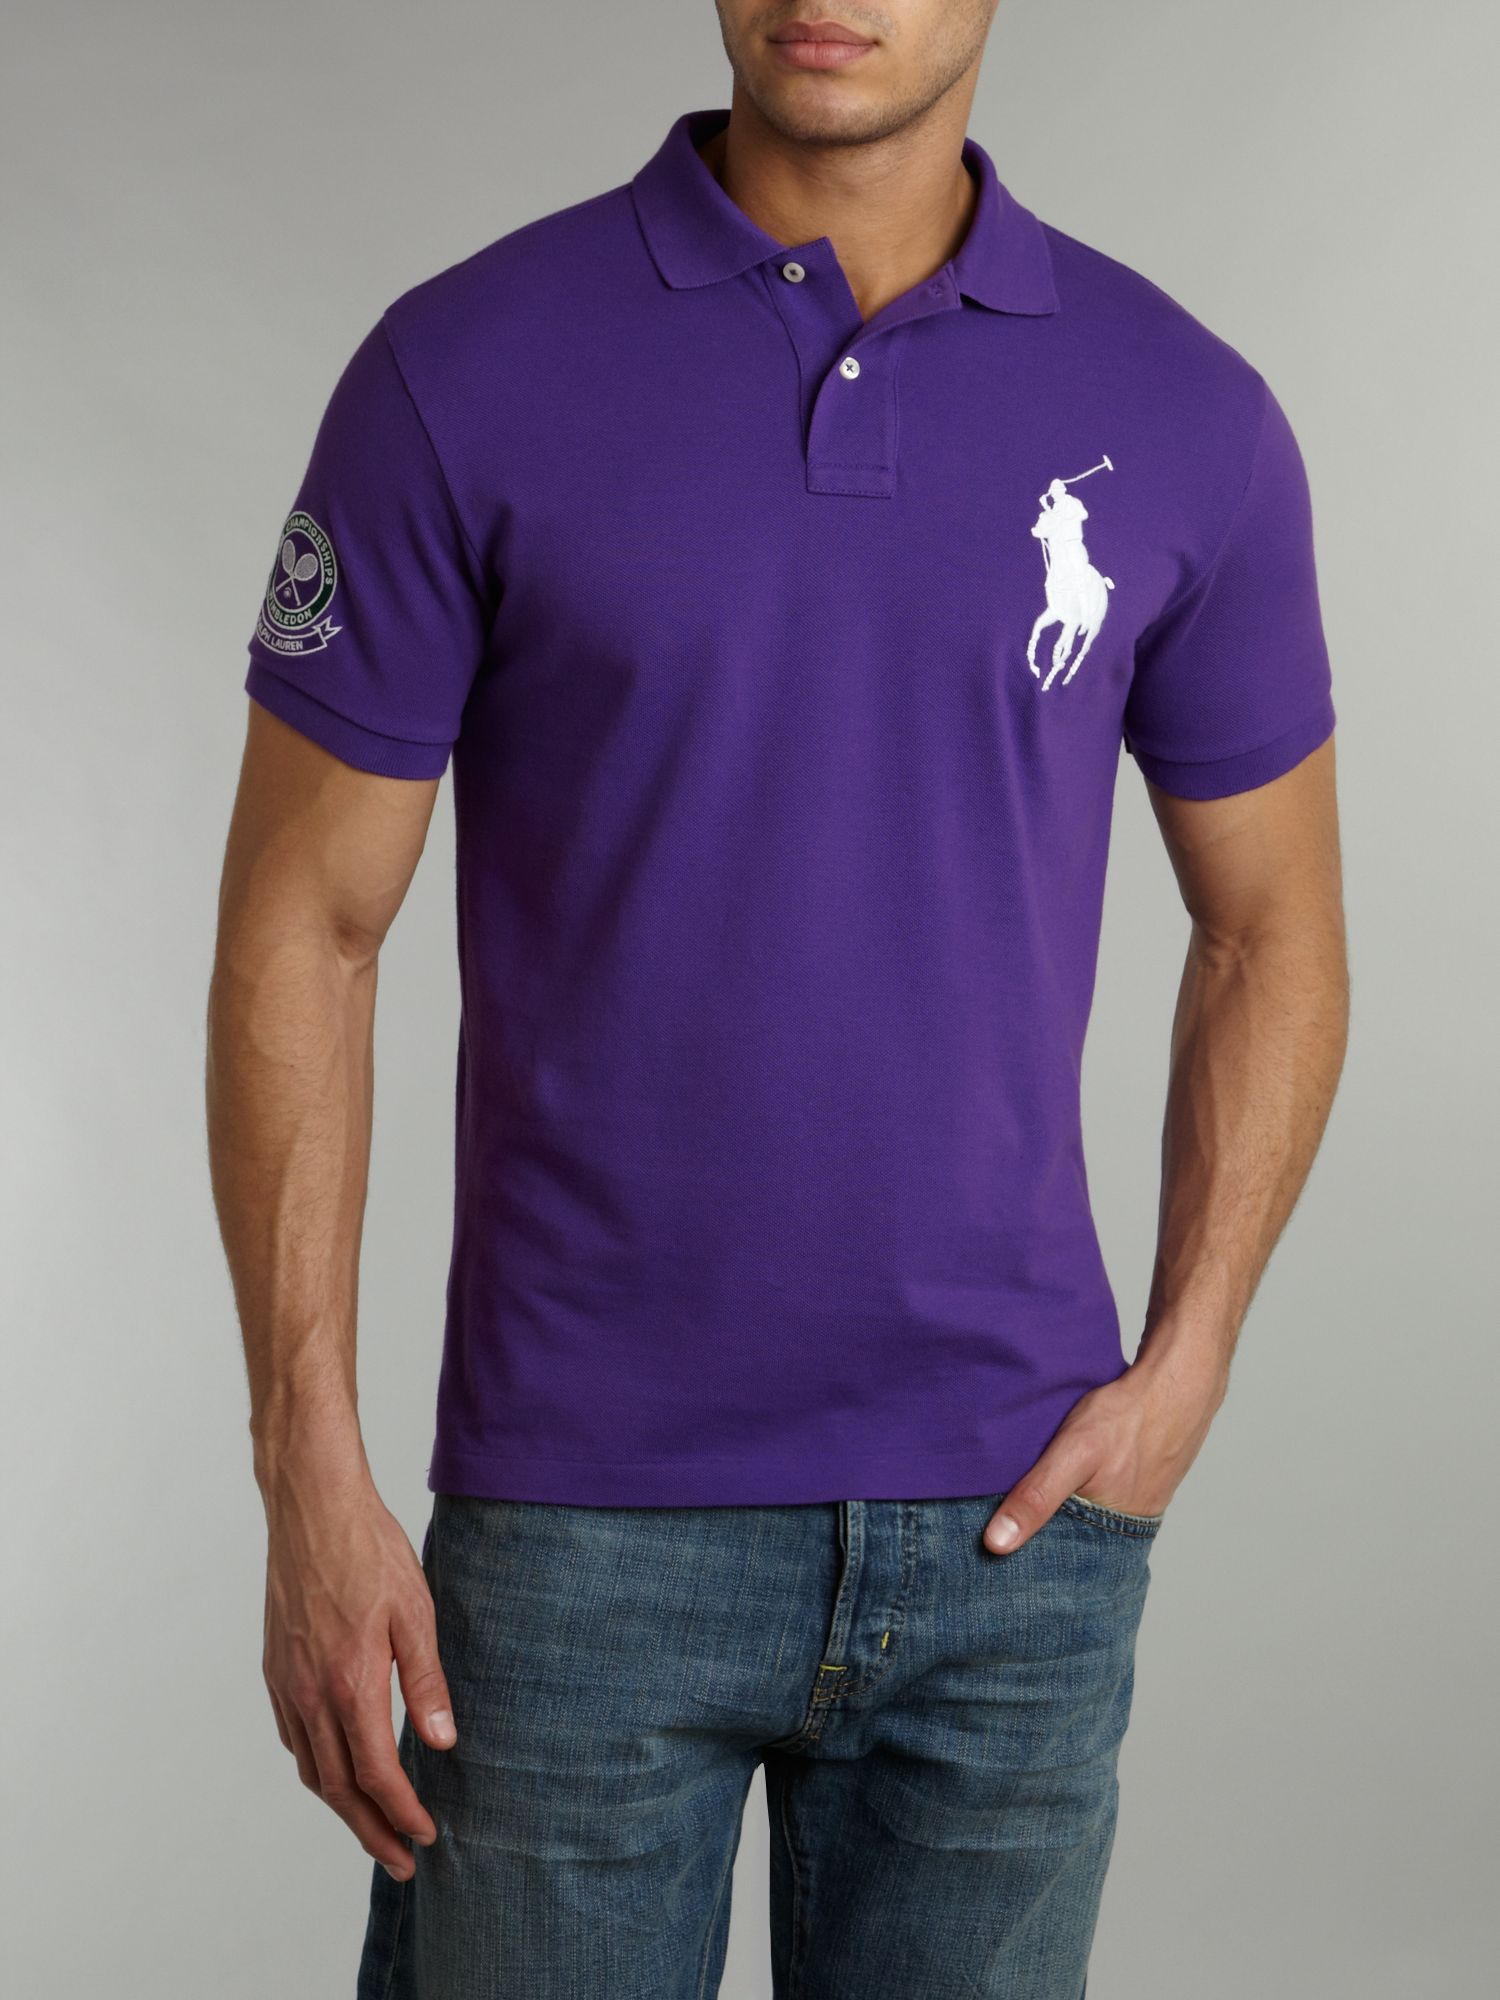 Polo ralph lauren wimbledon big pony mesh polo shirt in Man in polo shirt